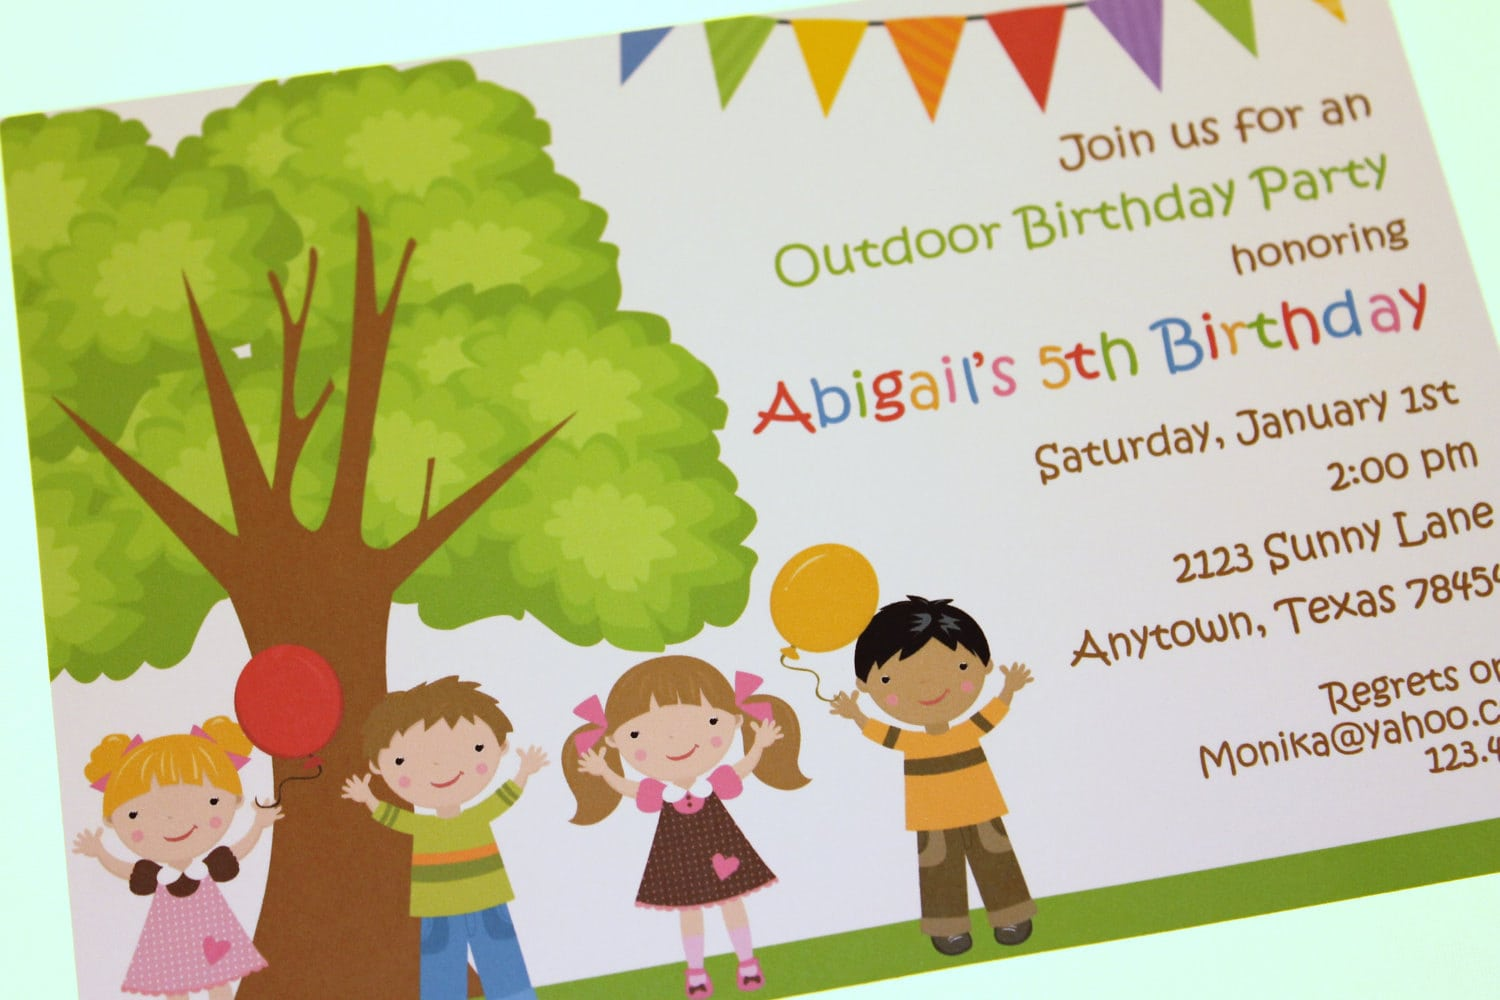 Outdoor Birthday Party Invitations By Pmcinvitations On Etsy